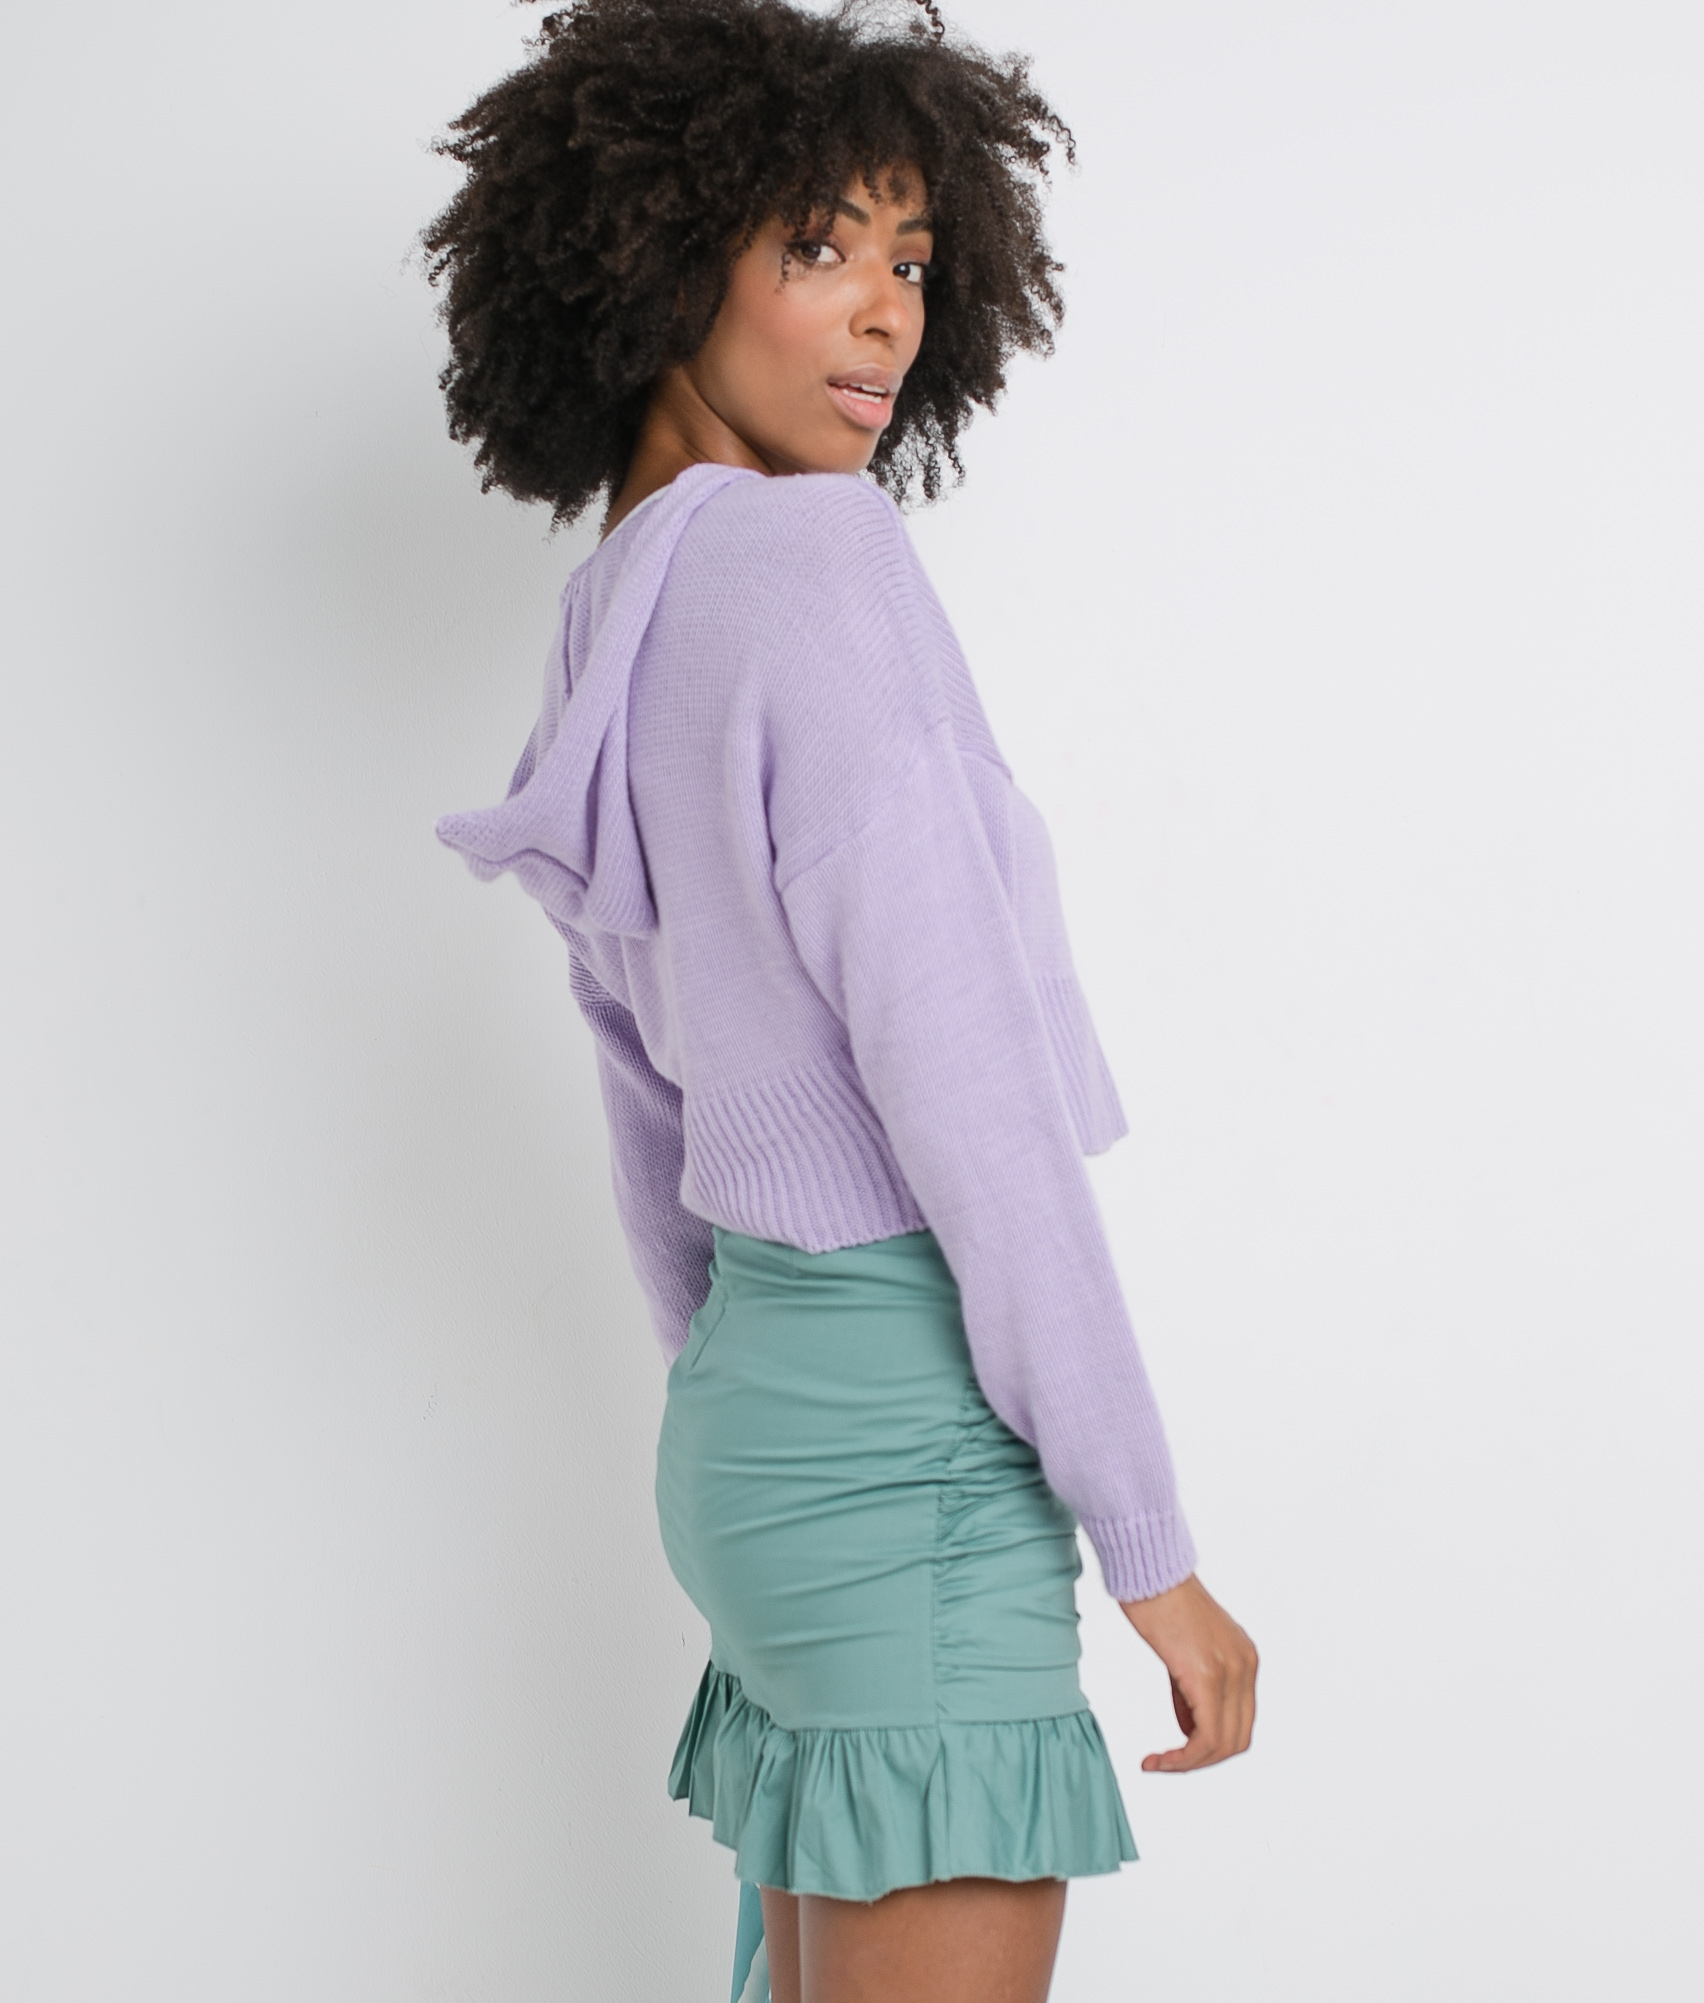 SERPLEA SWEATER - PURPLE